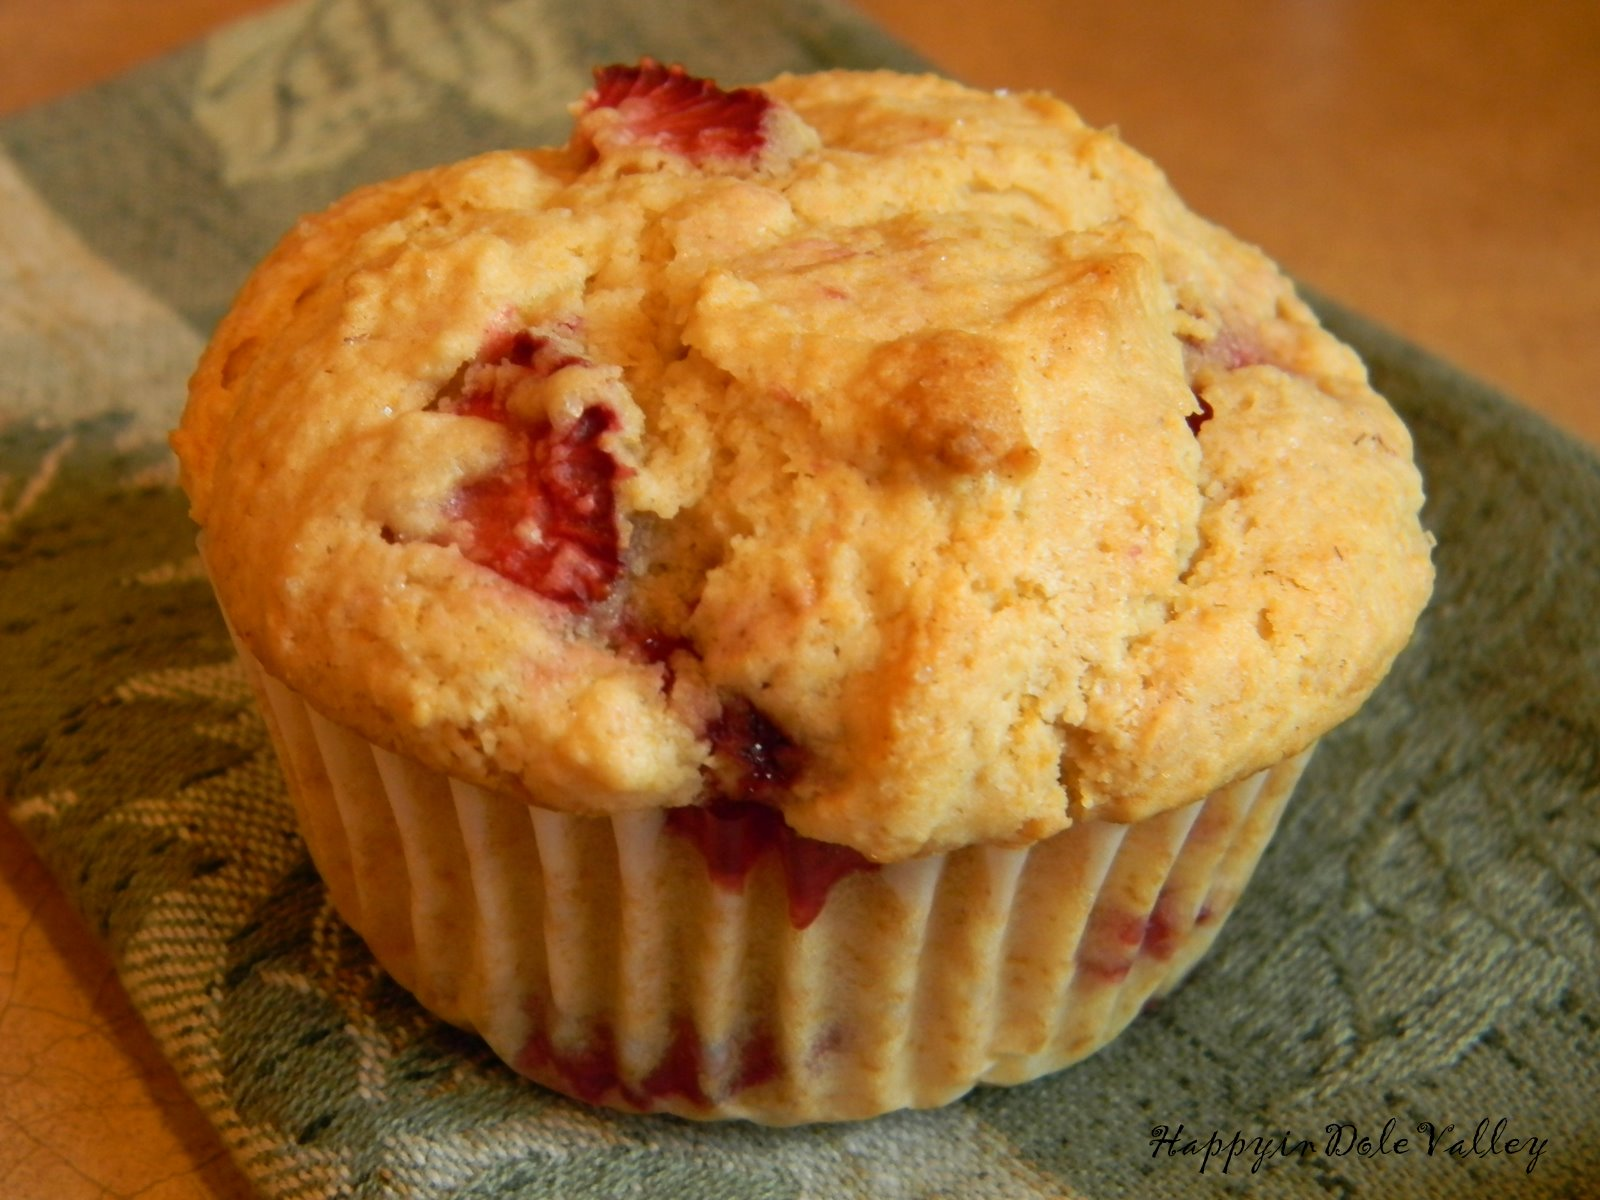 Happy in Dole Valley: Muffin Monday - Strawberry Shortcake ...